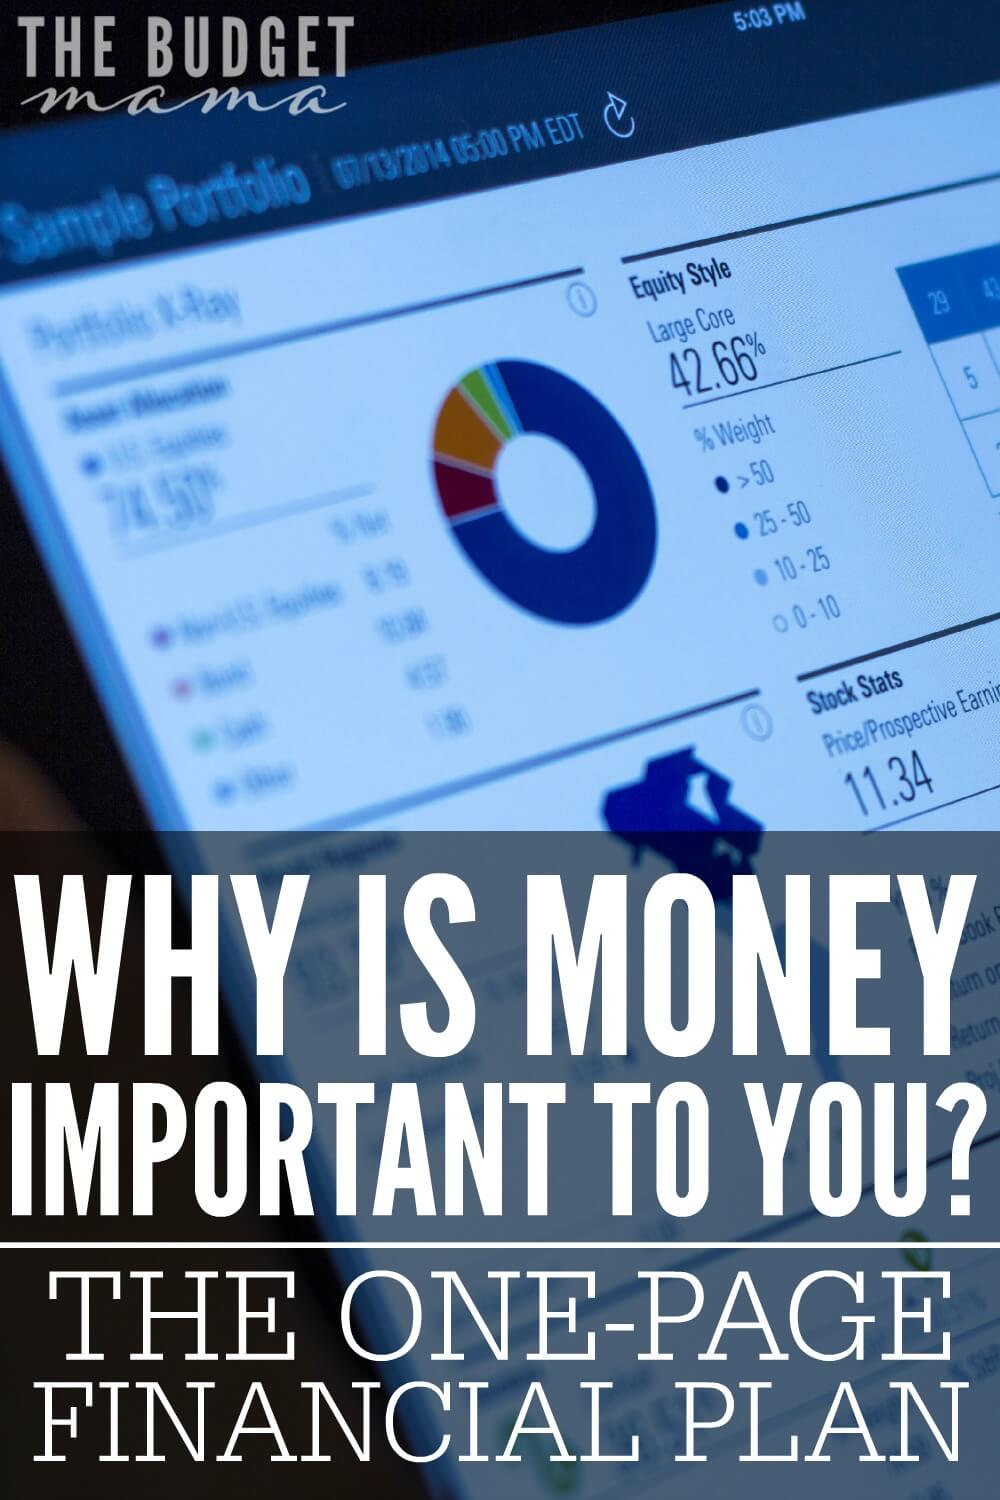 5 Reasons Why Making Money Isn't The Most Important Part Of Life